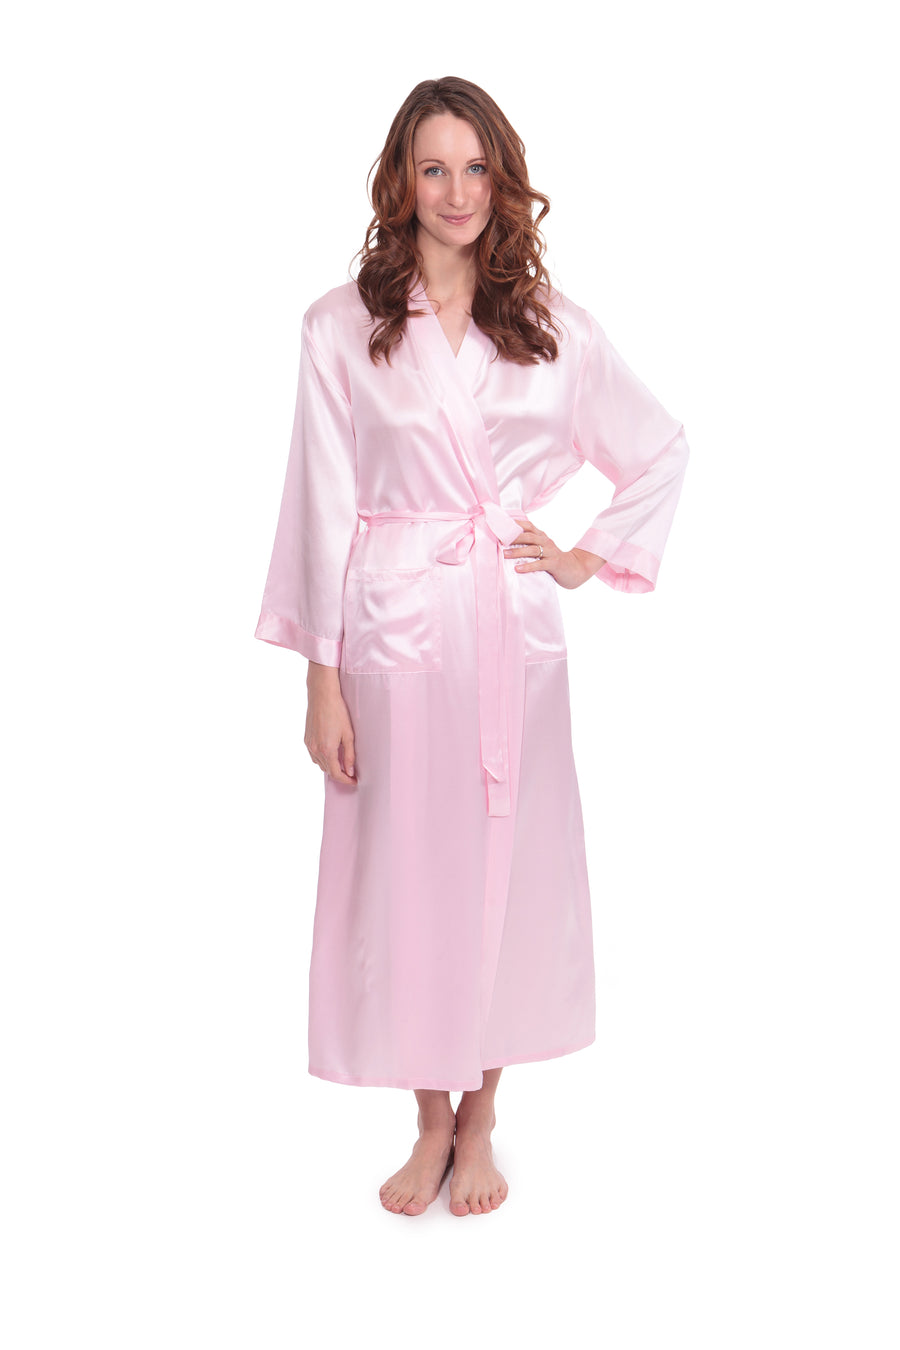 Perla Naturale - Women's Silk Long Robe - TexereSilk